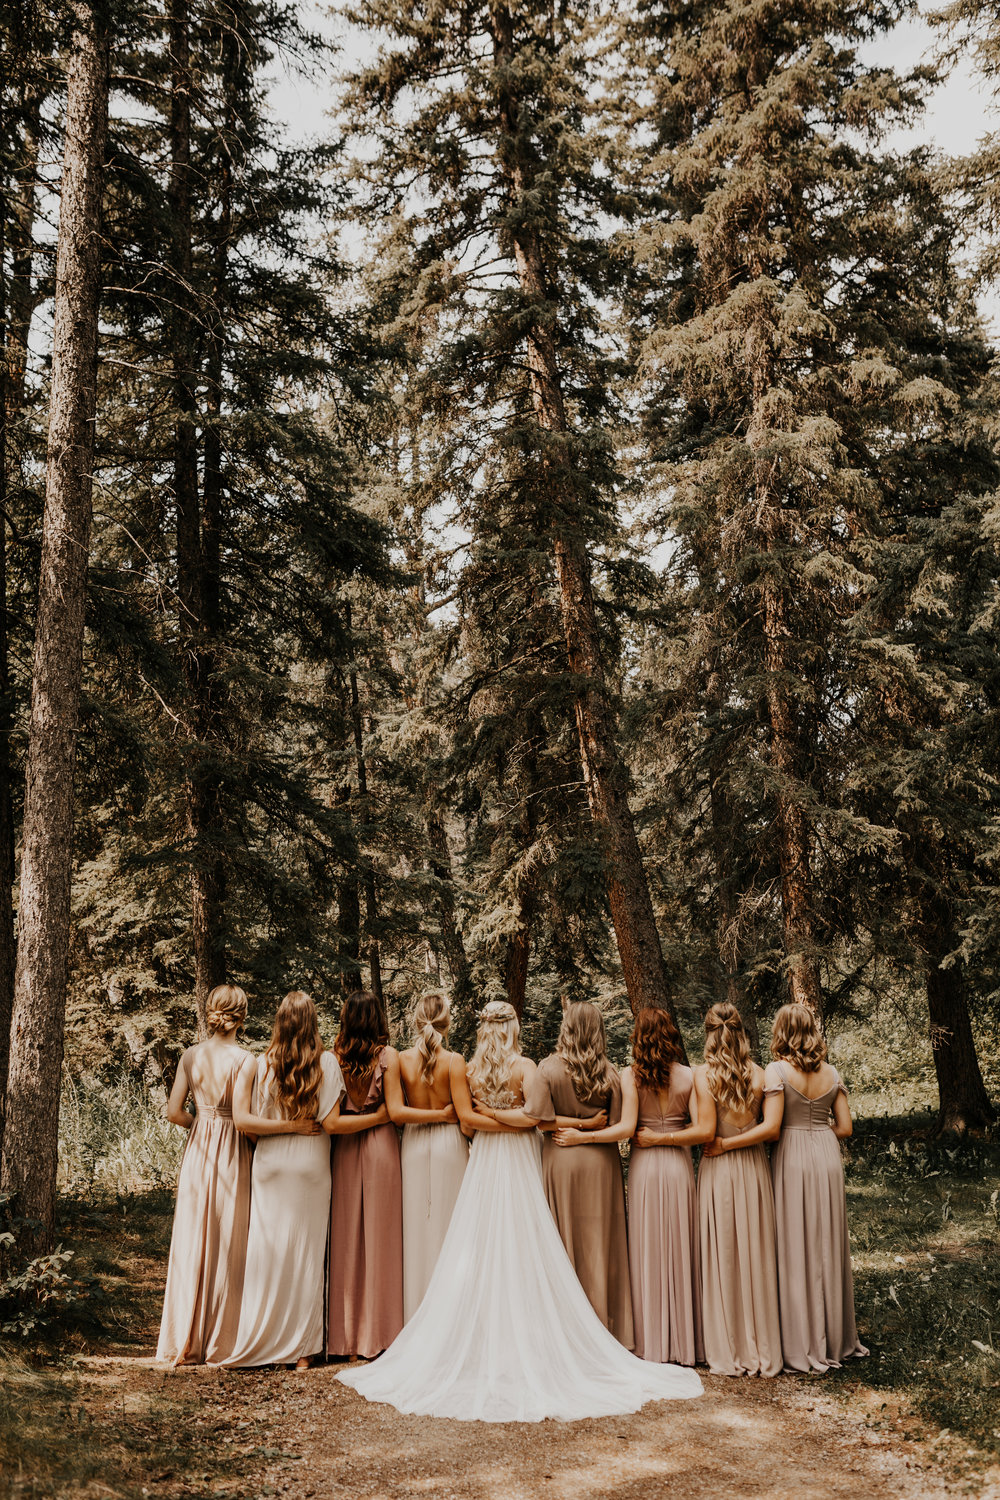 Banff Wedding l Bridesmaids Photos l Oregon Wedding Photographer l Minnesota Wedding Photographer l Elopement Photographer l Forest Wedding-32.jpg